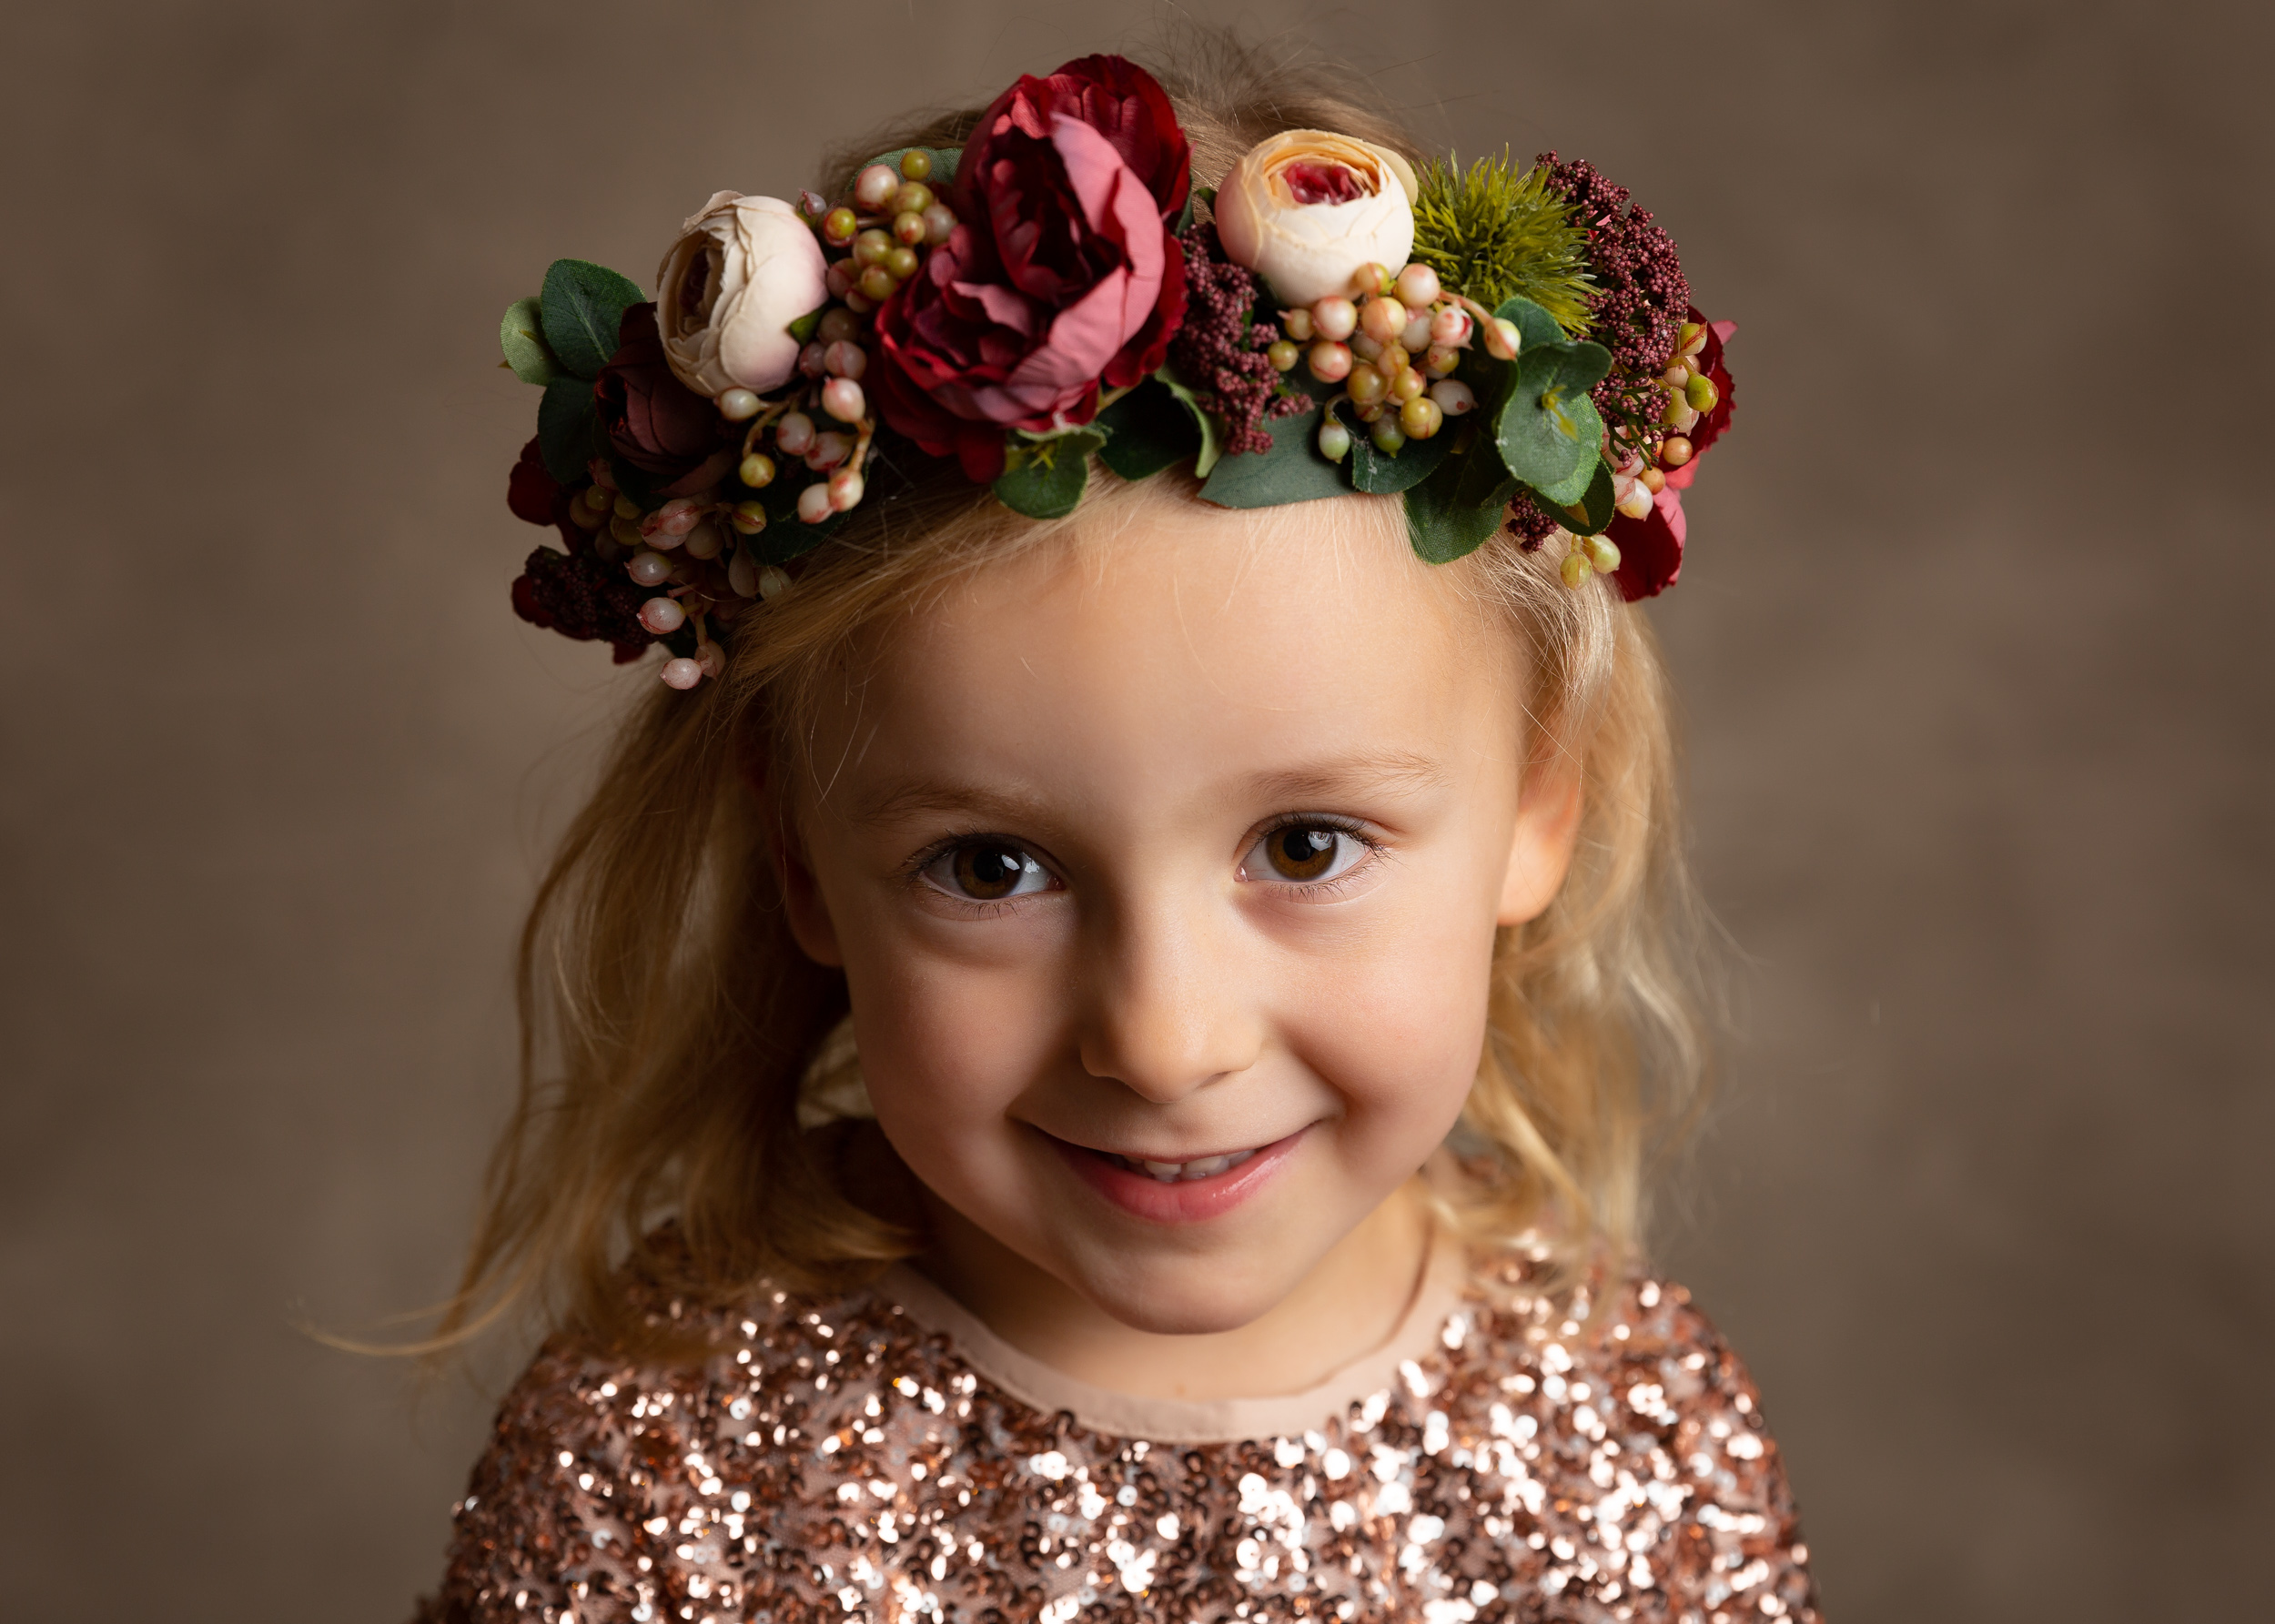 Little girl with a floral headress on during a family portrait session in Cheshire